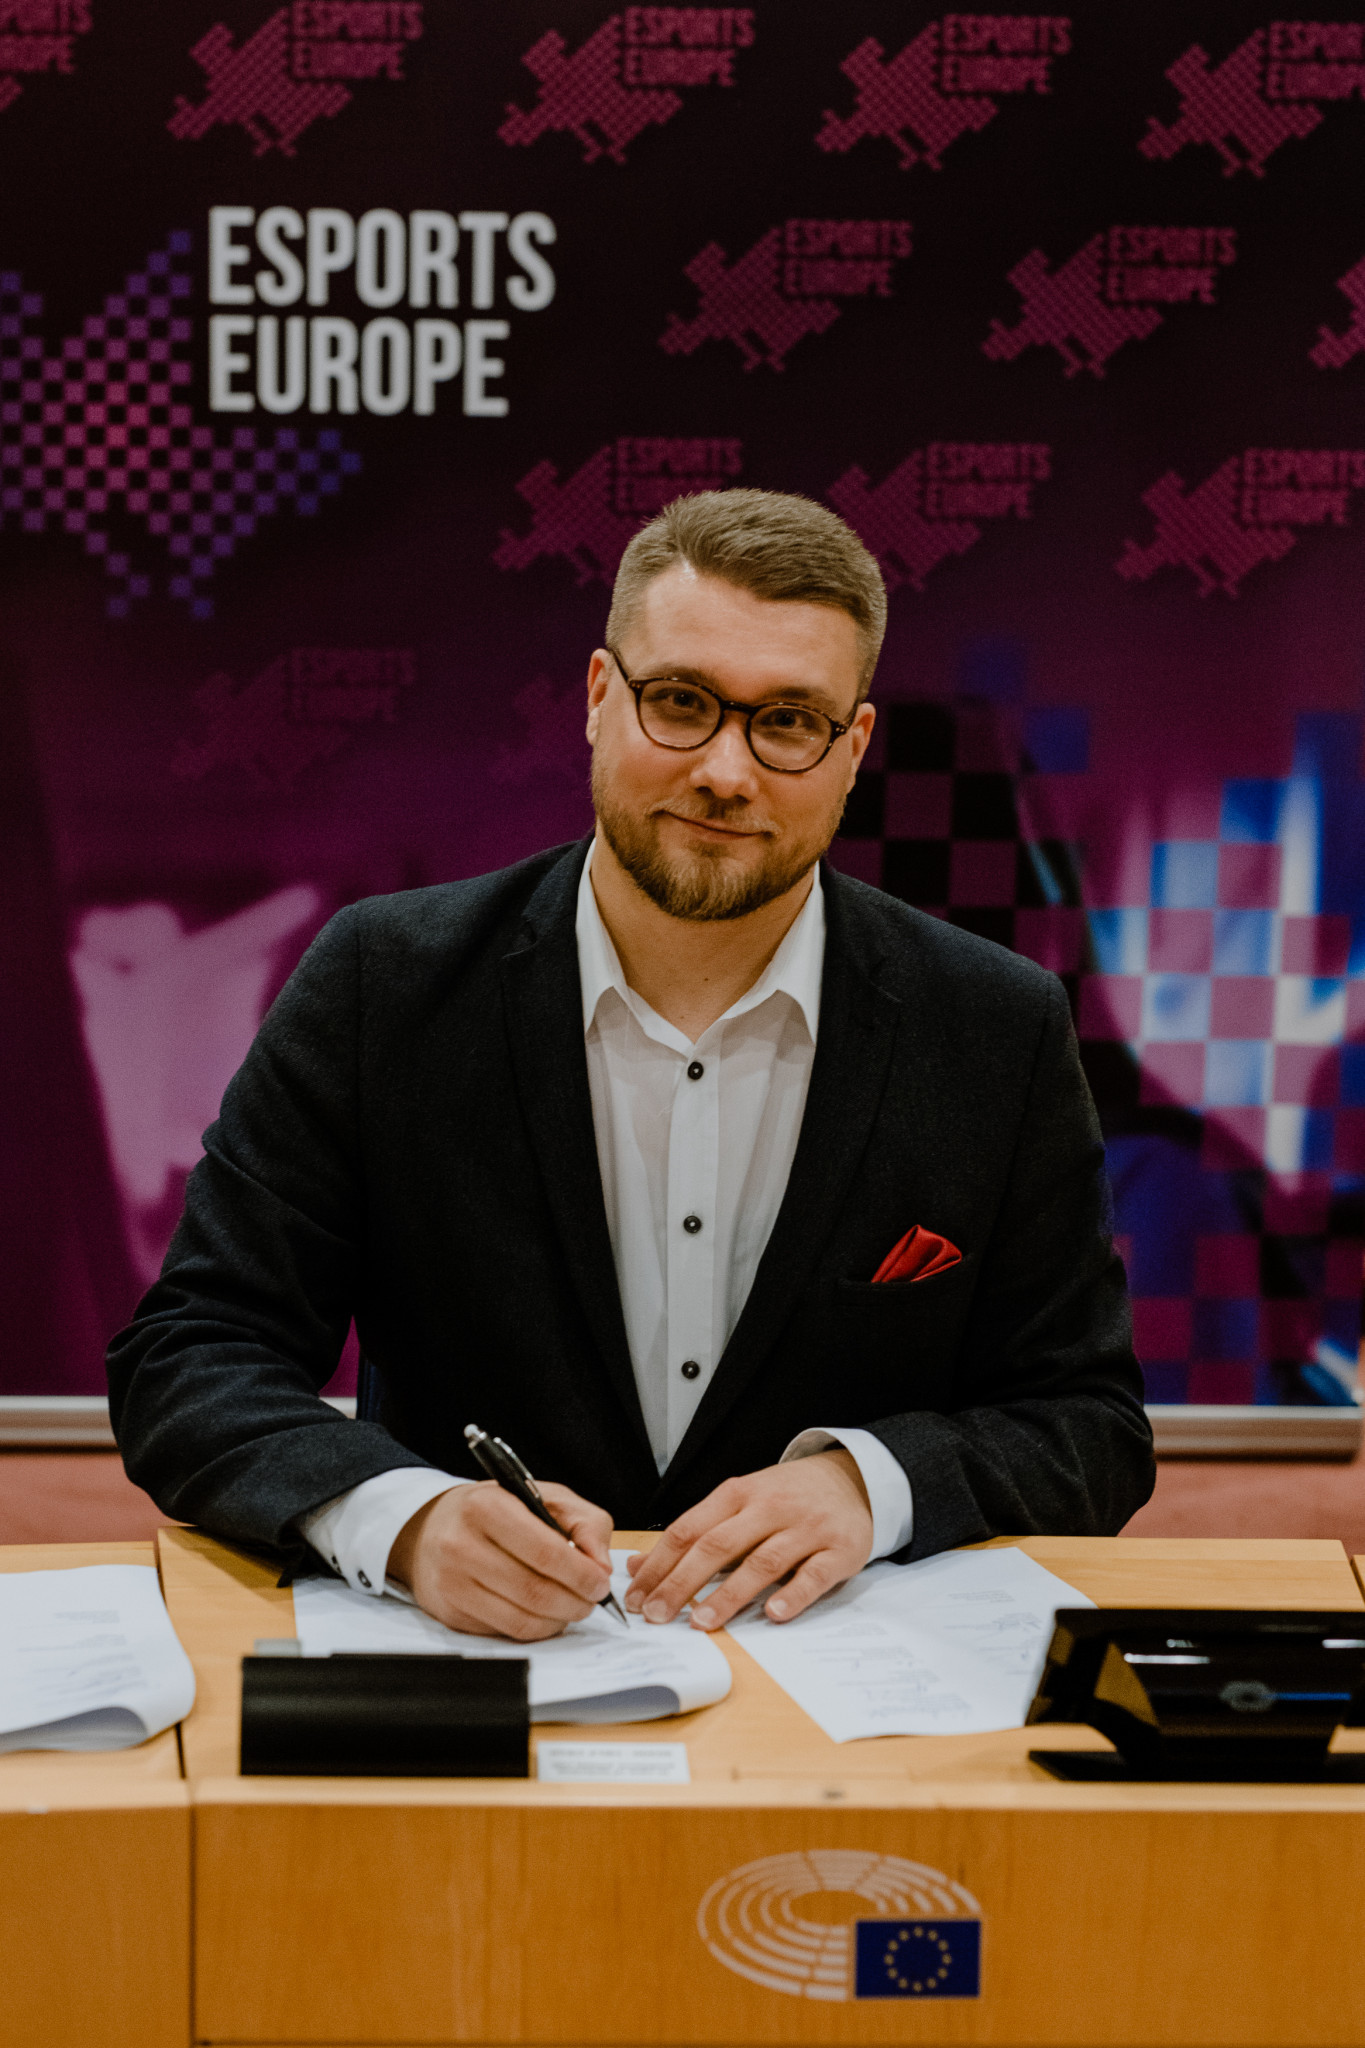 German elected first President of Esports Europe